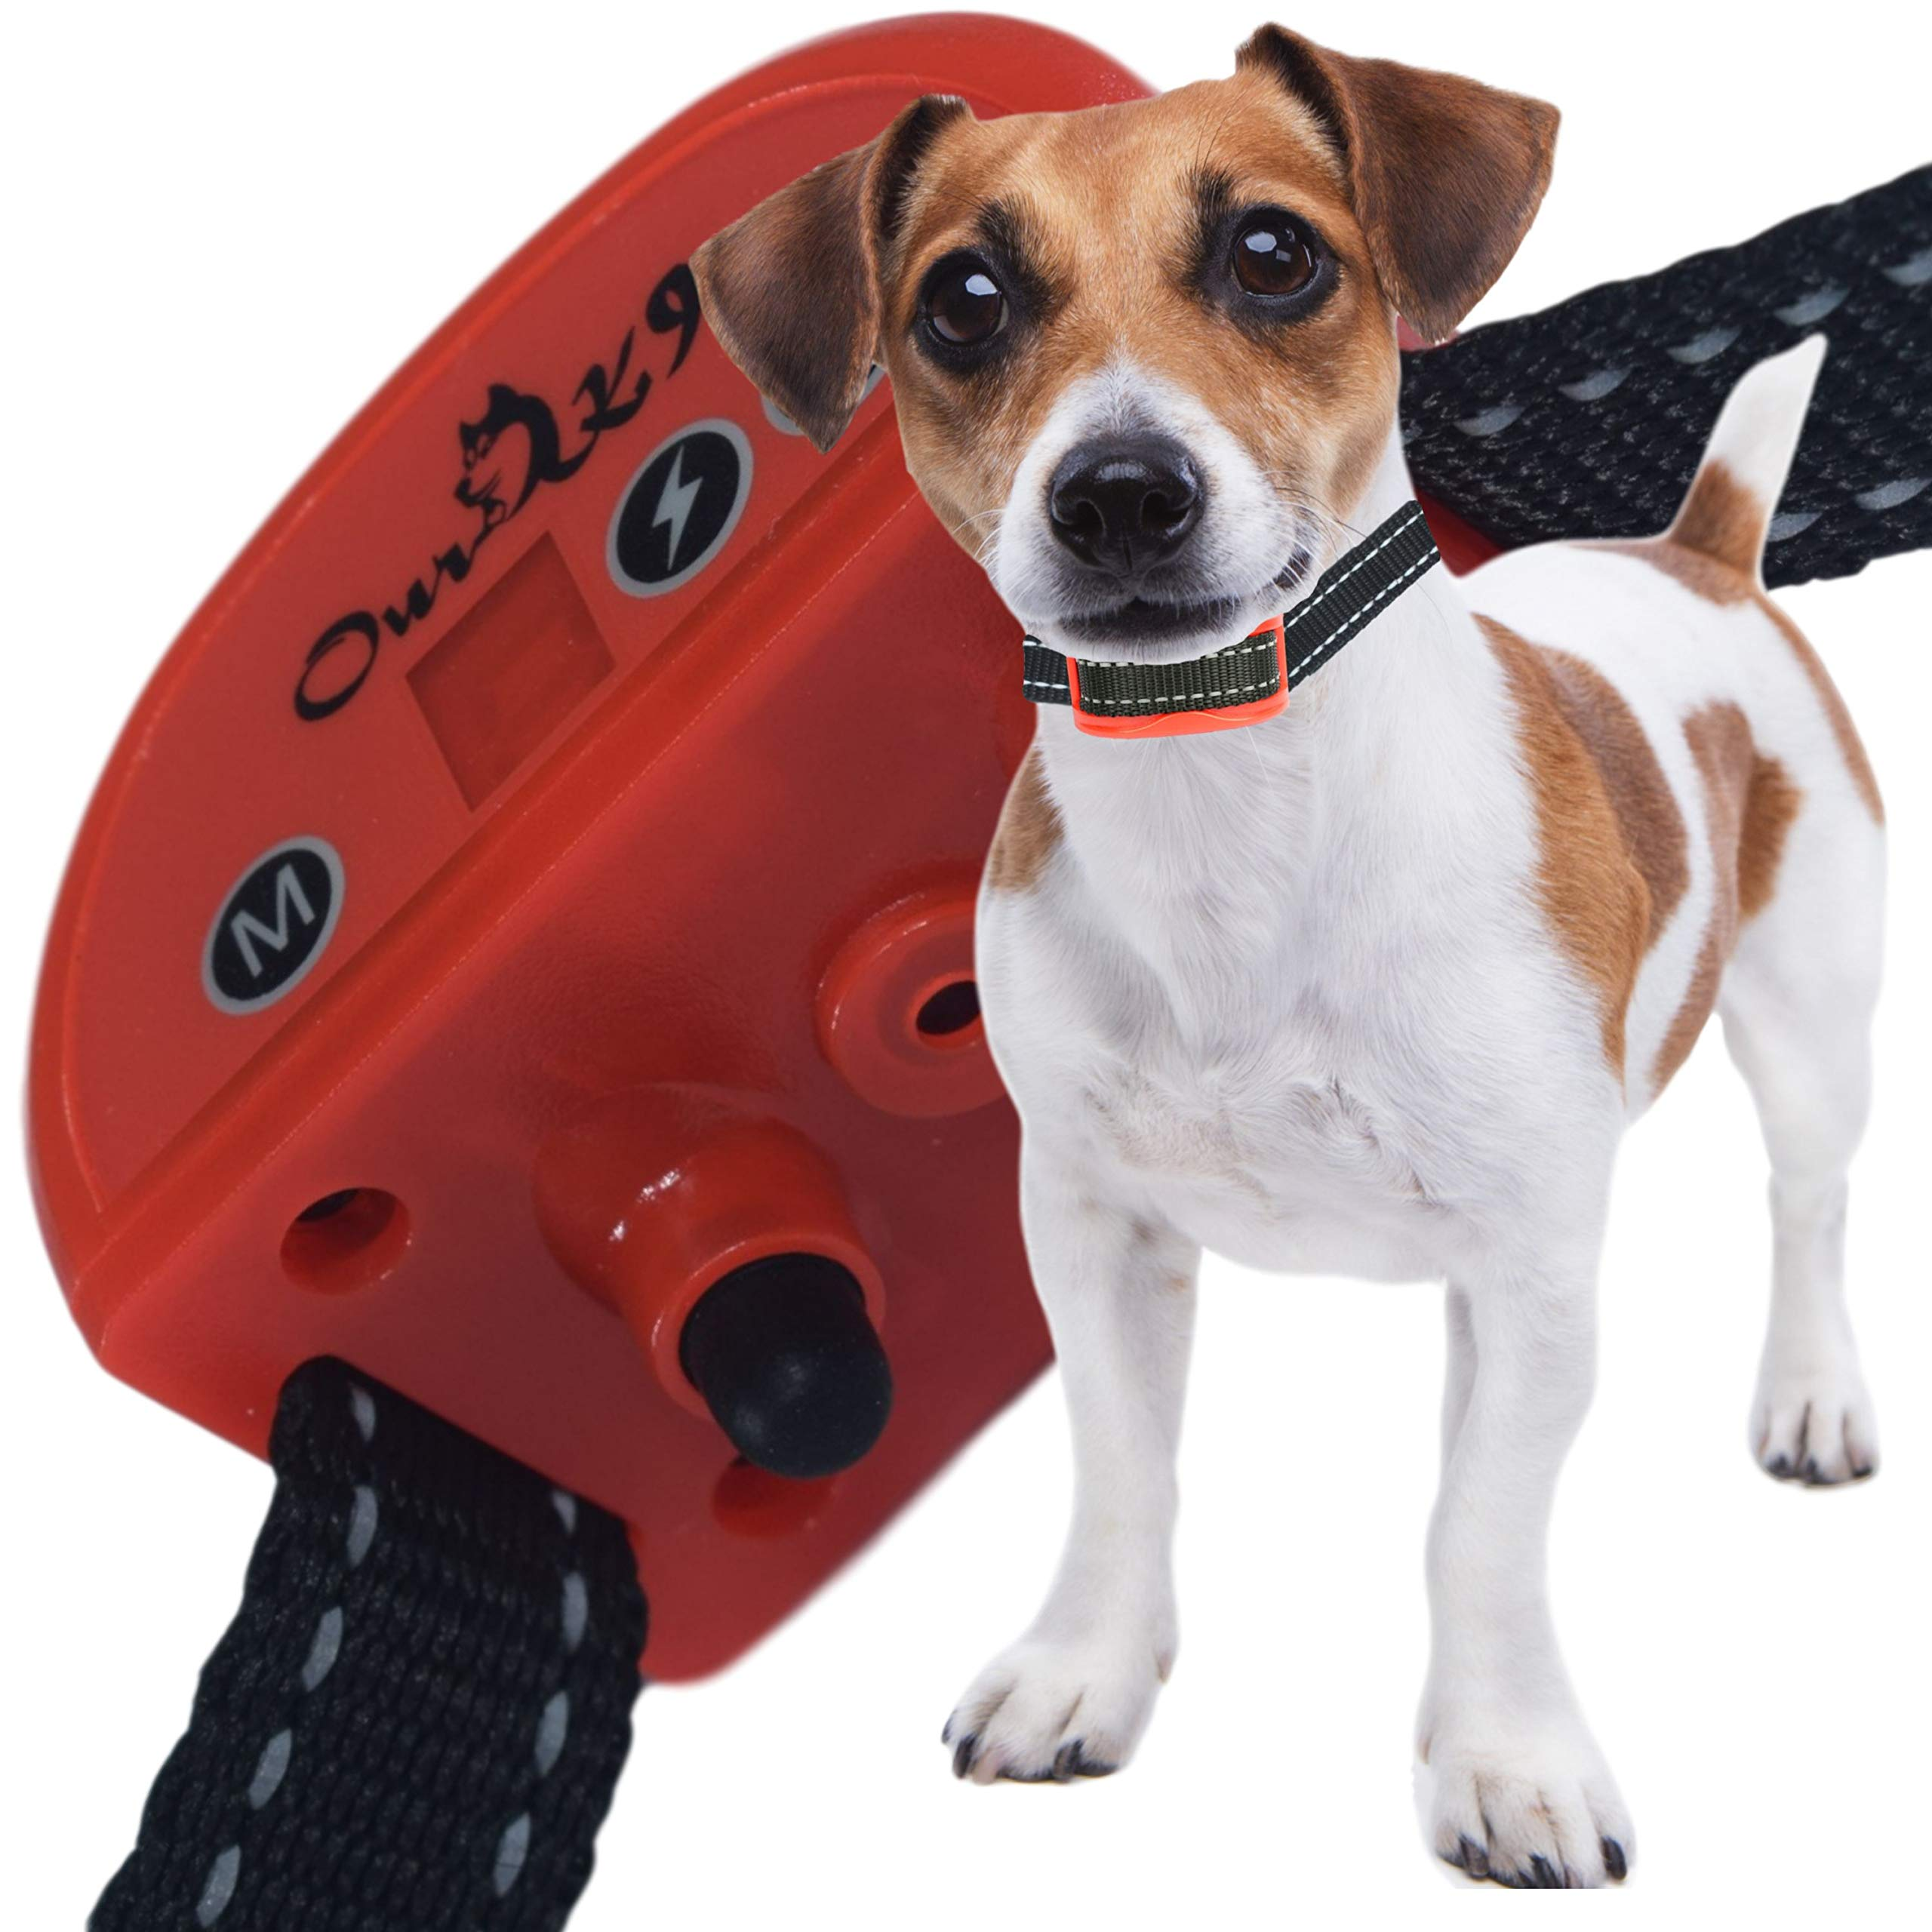 Our K9 Training Made Easy - Anti - Bark Collar - Sound (Beep) or Silent (Ultrasonic) & 7 Levels of Adjustable Vibration or Shock, Pain-Free and Ultra Safe Cherry